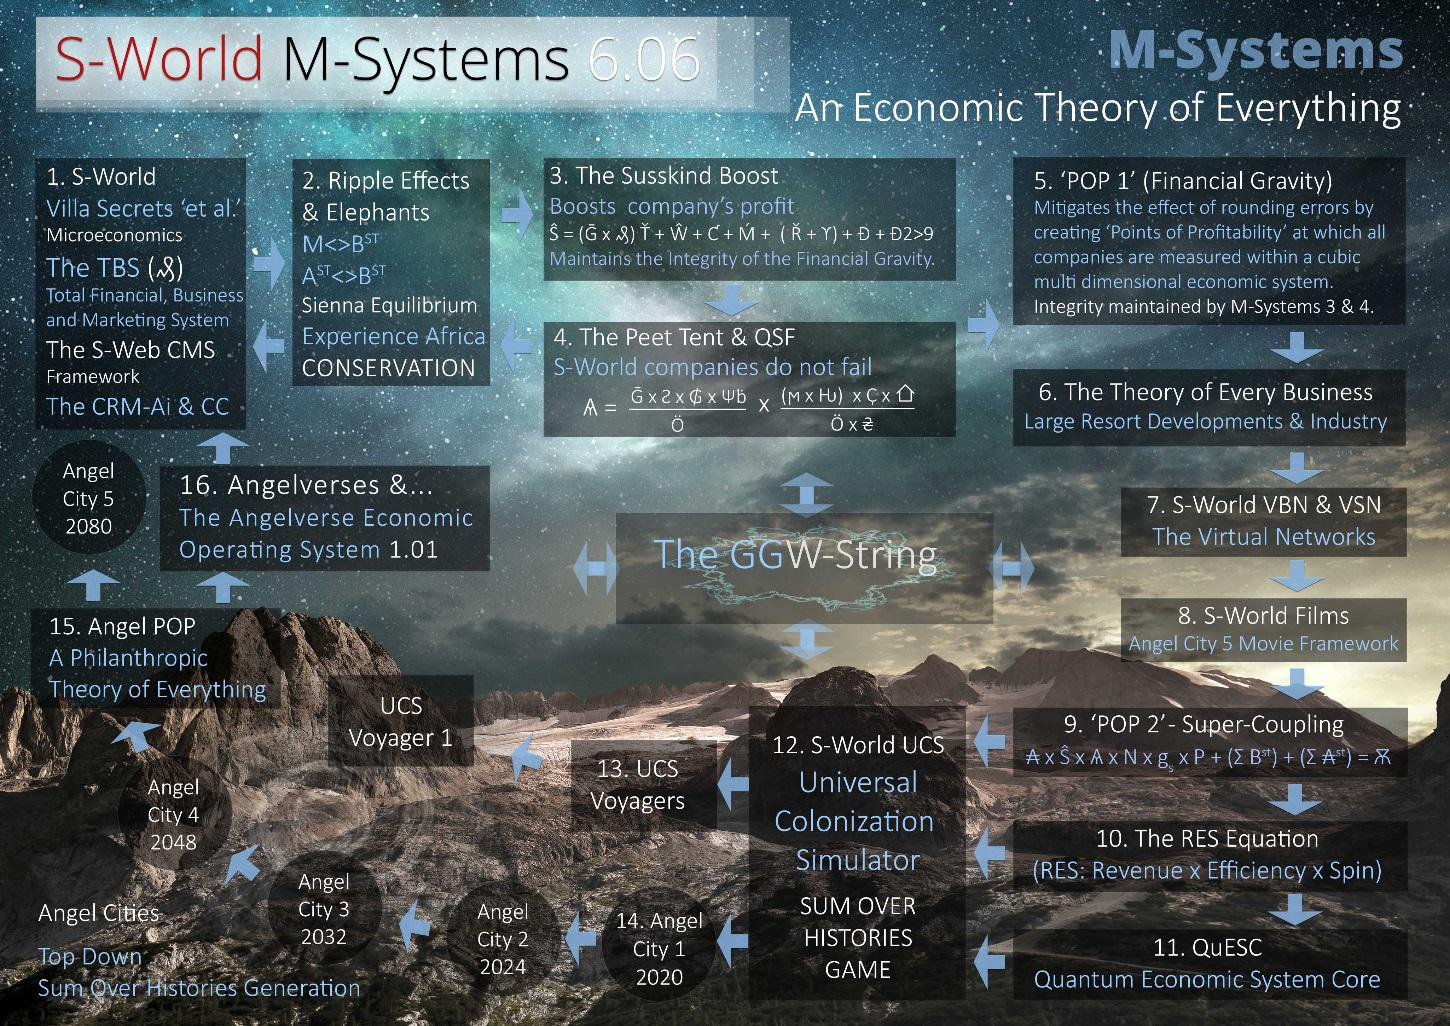 S-World M-Systems 6.06